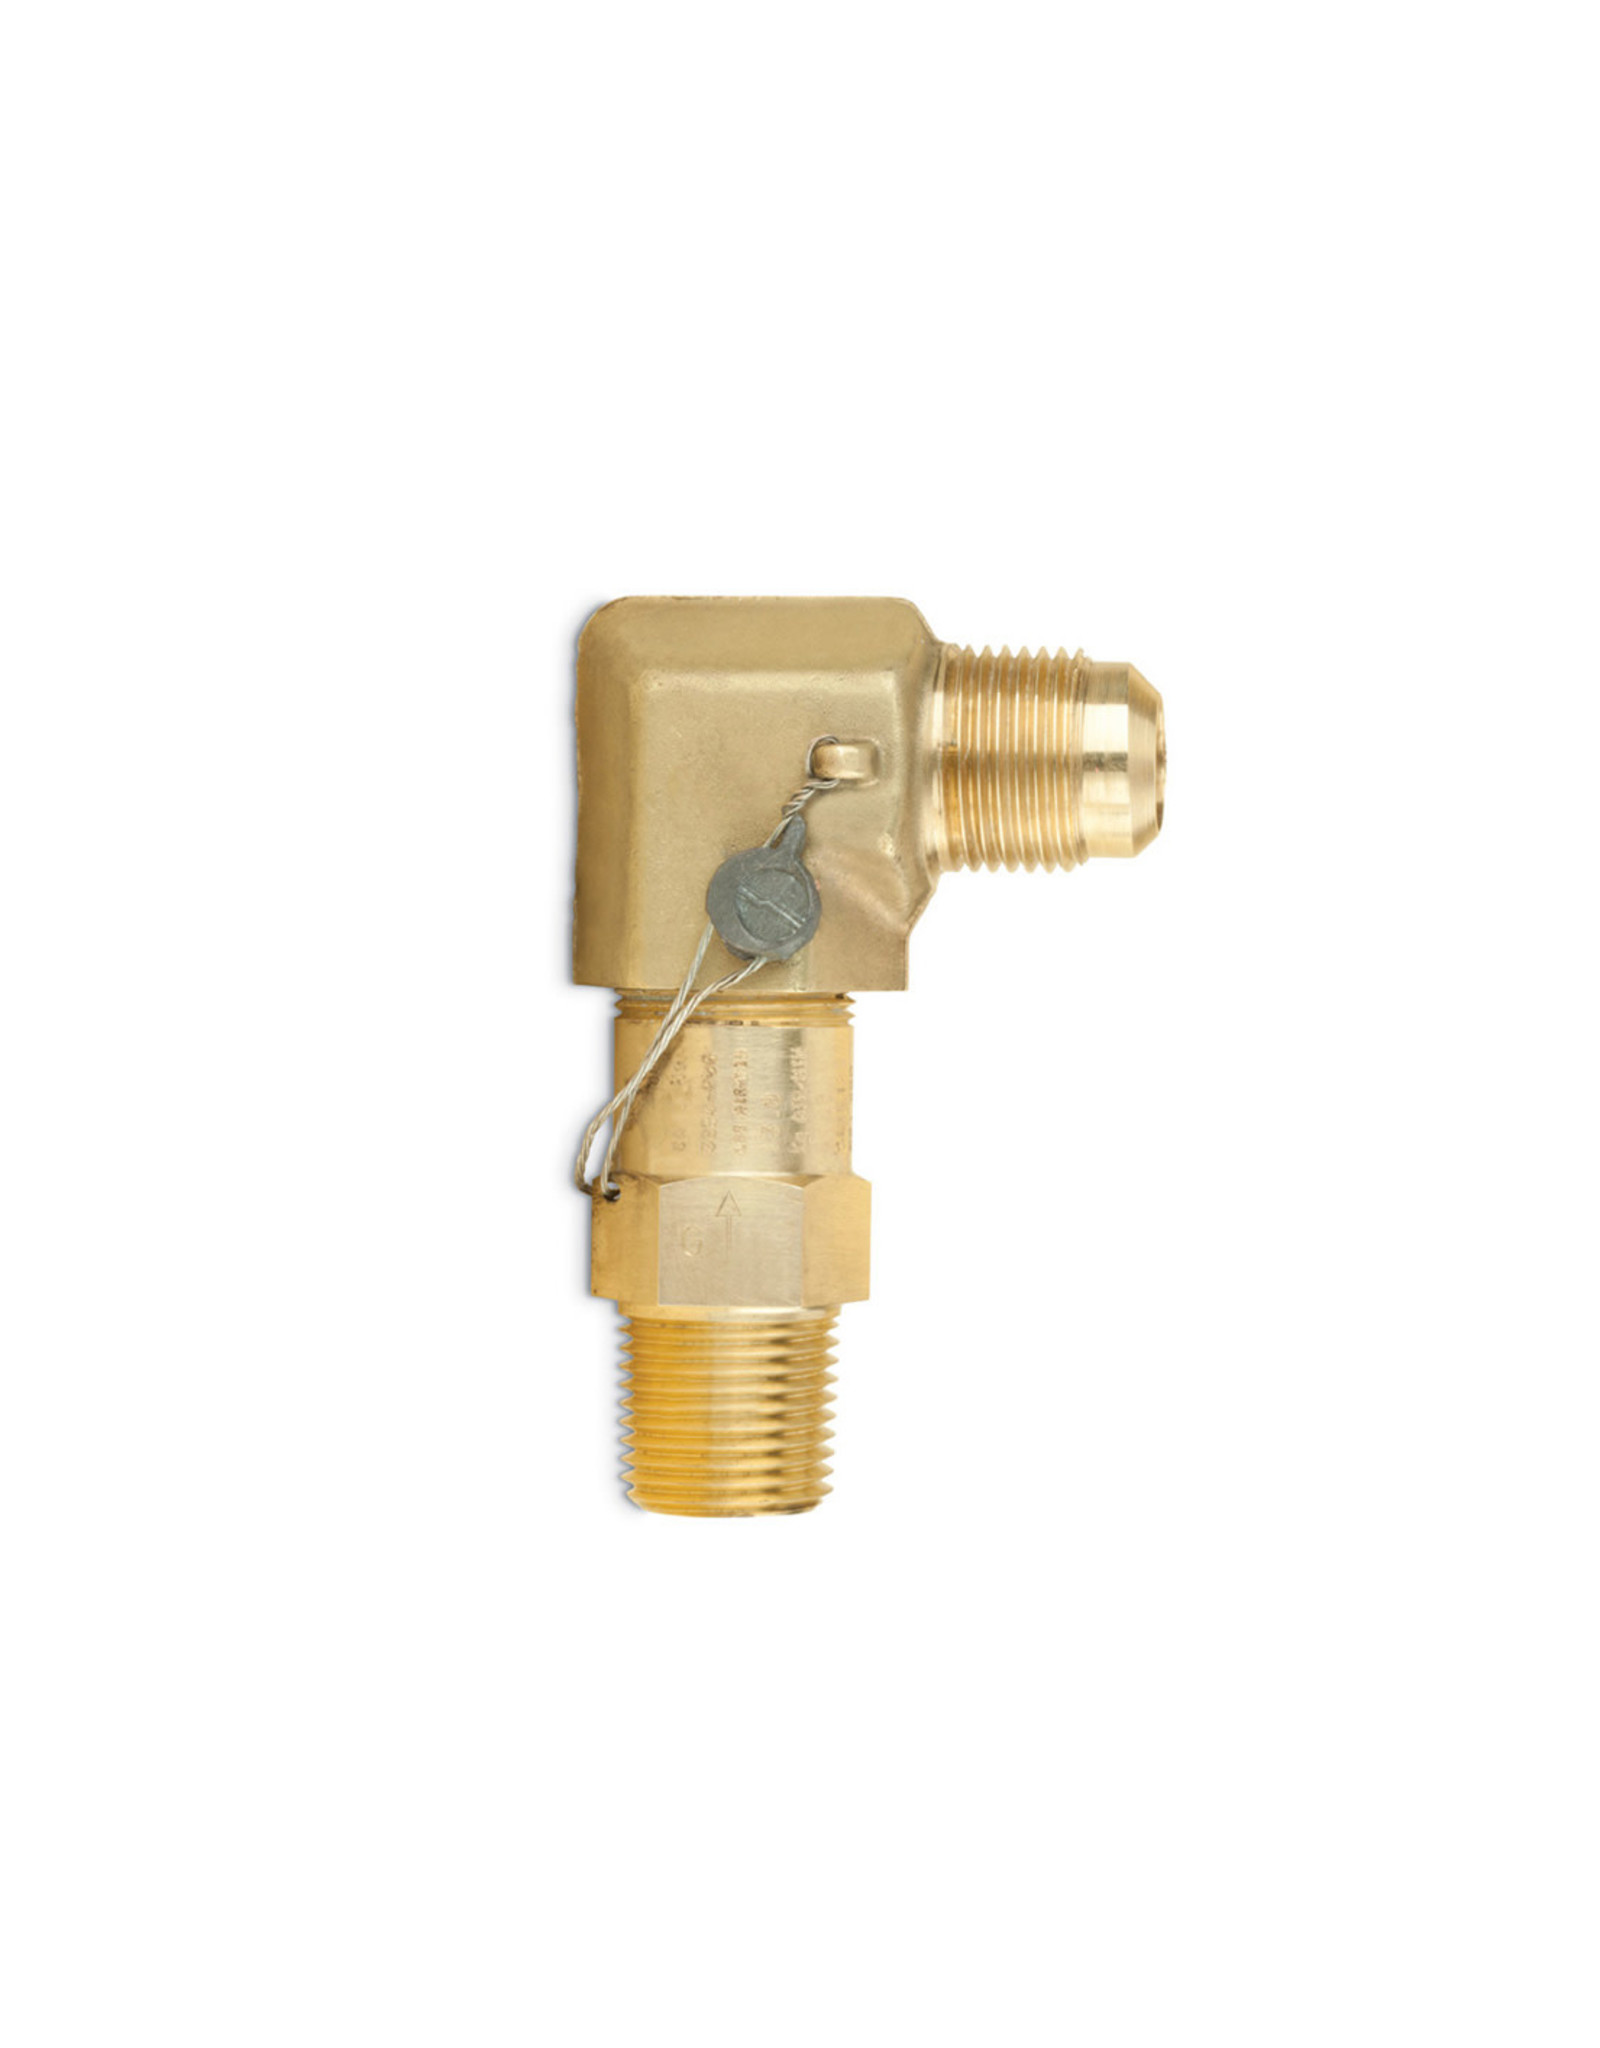 Superior HVACR Angle Pressure Relief Valves - Types 3212, 3214, 3215, 3216, 3220